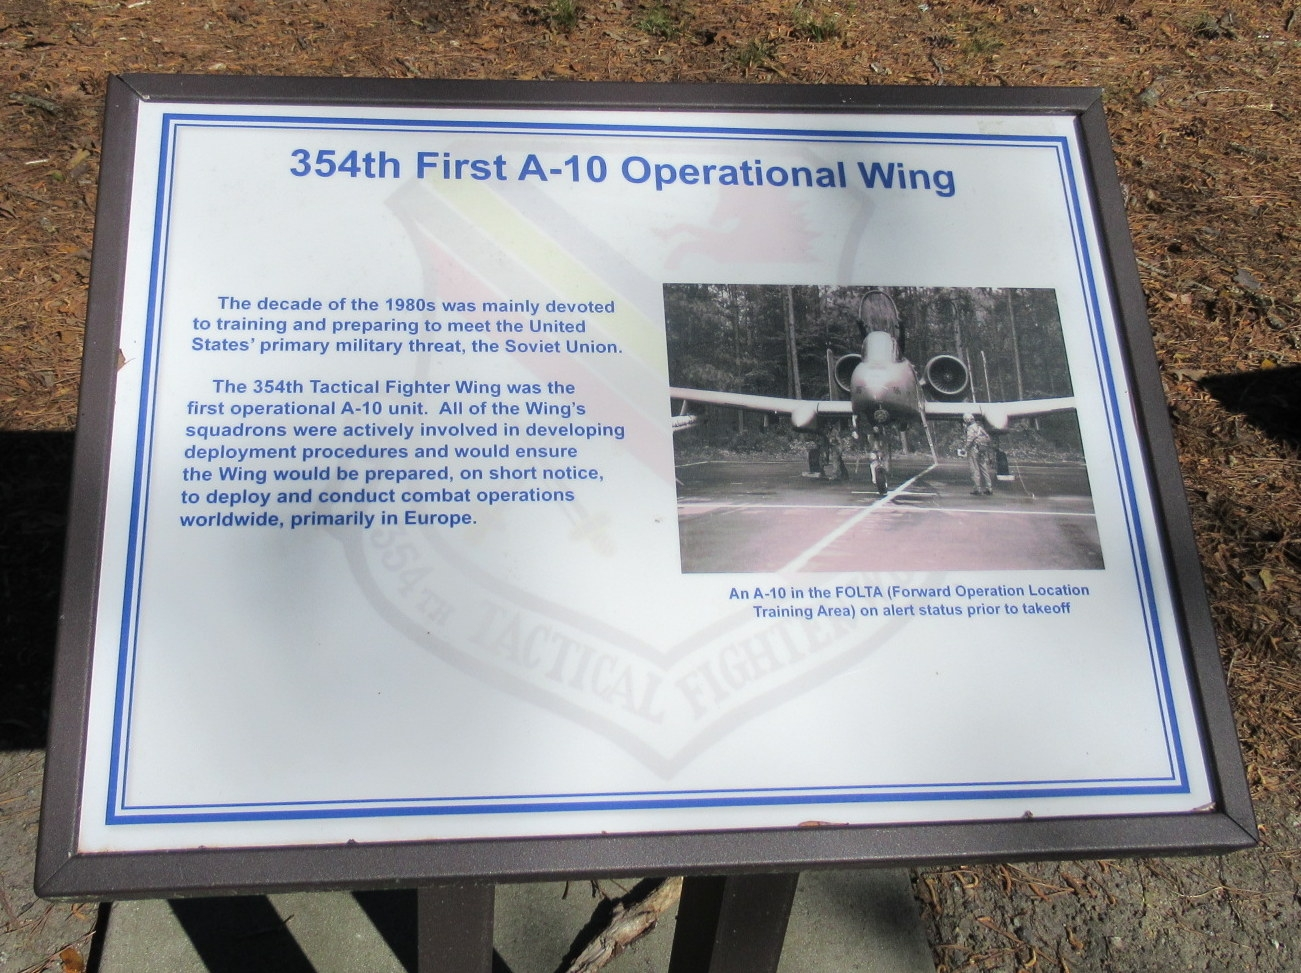 354th First A-10 Operational Wing Marker